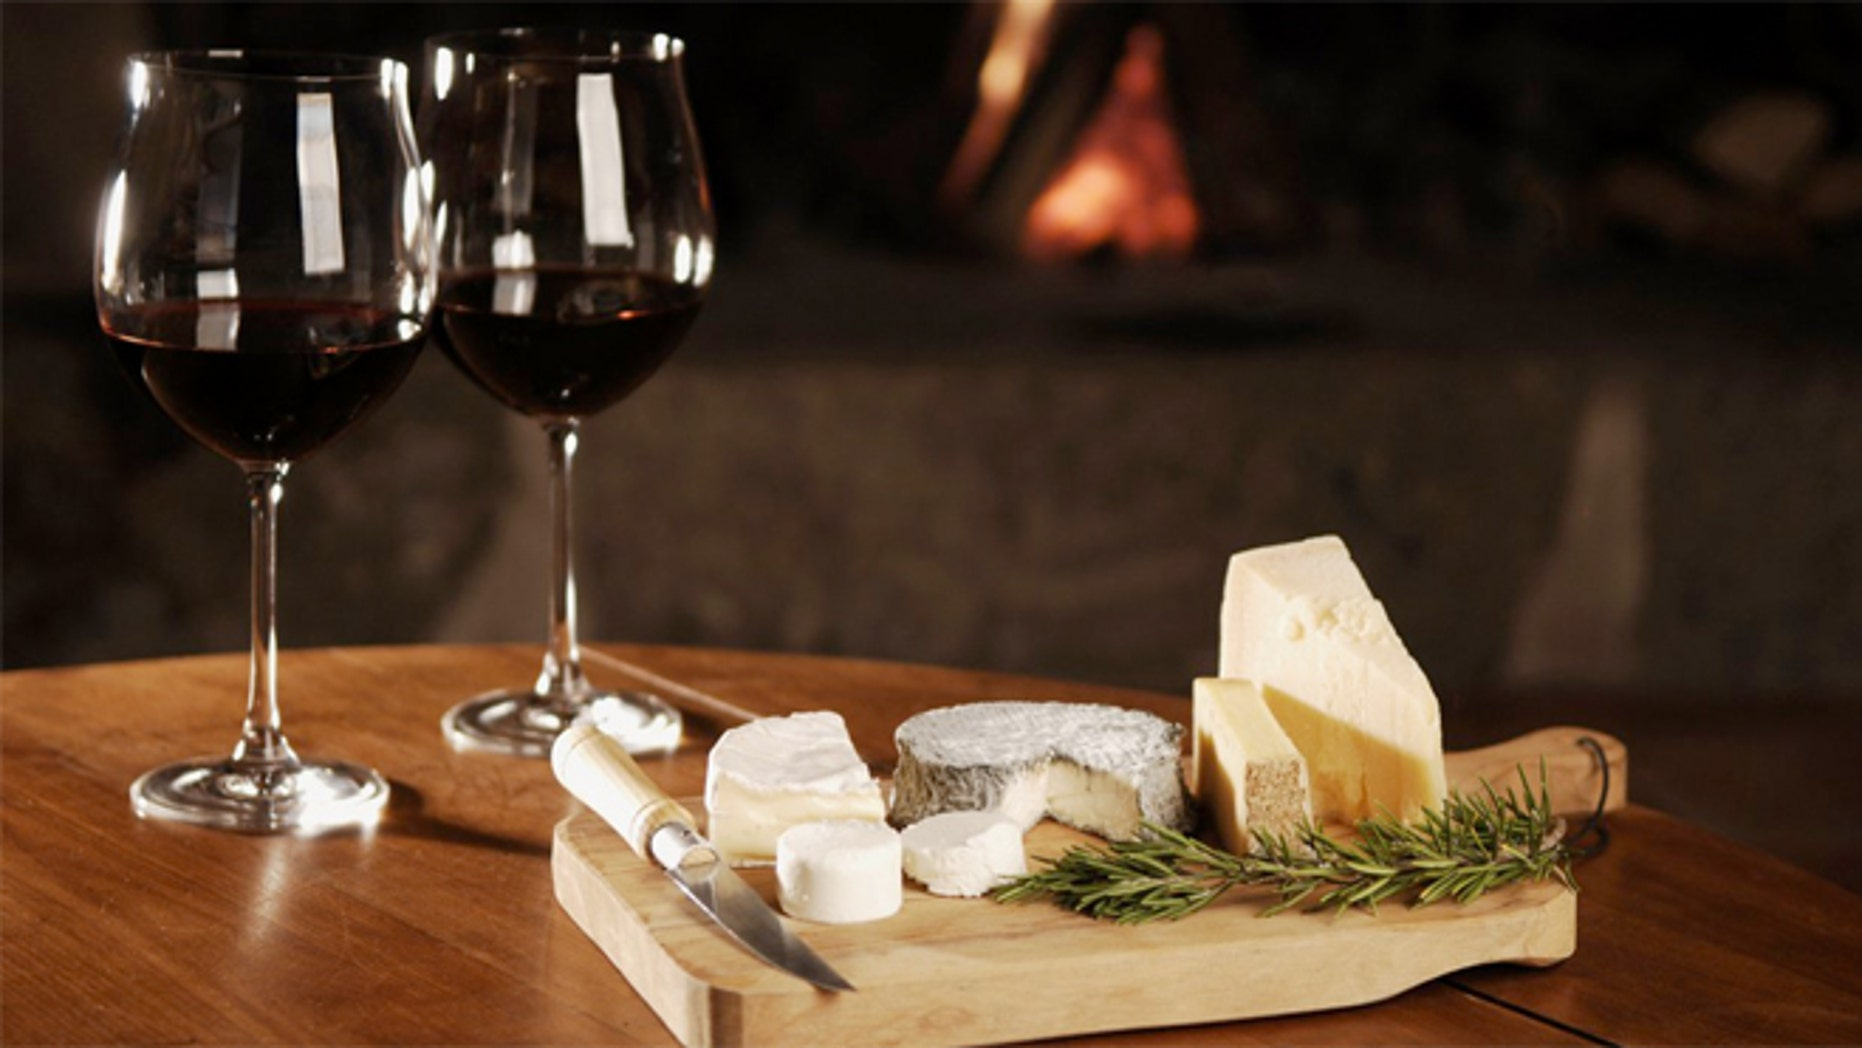 These tips will make your wine and cheese pairing perfect.